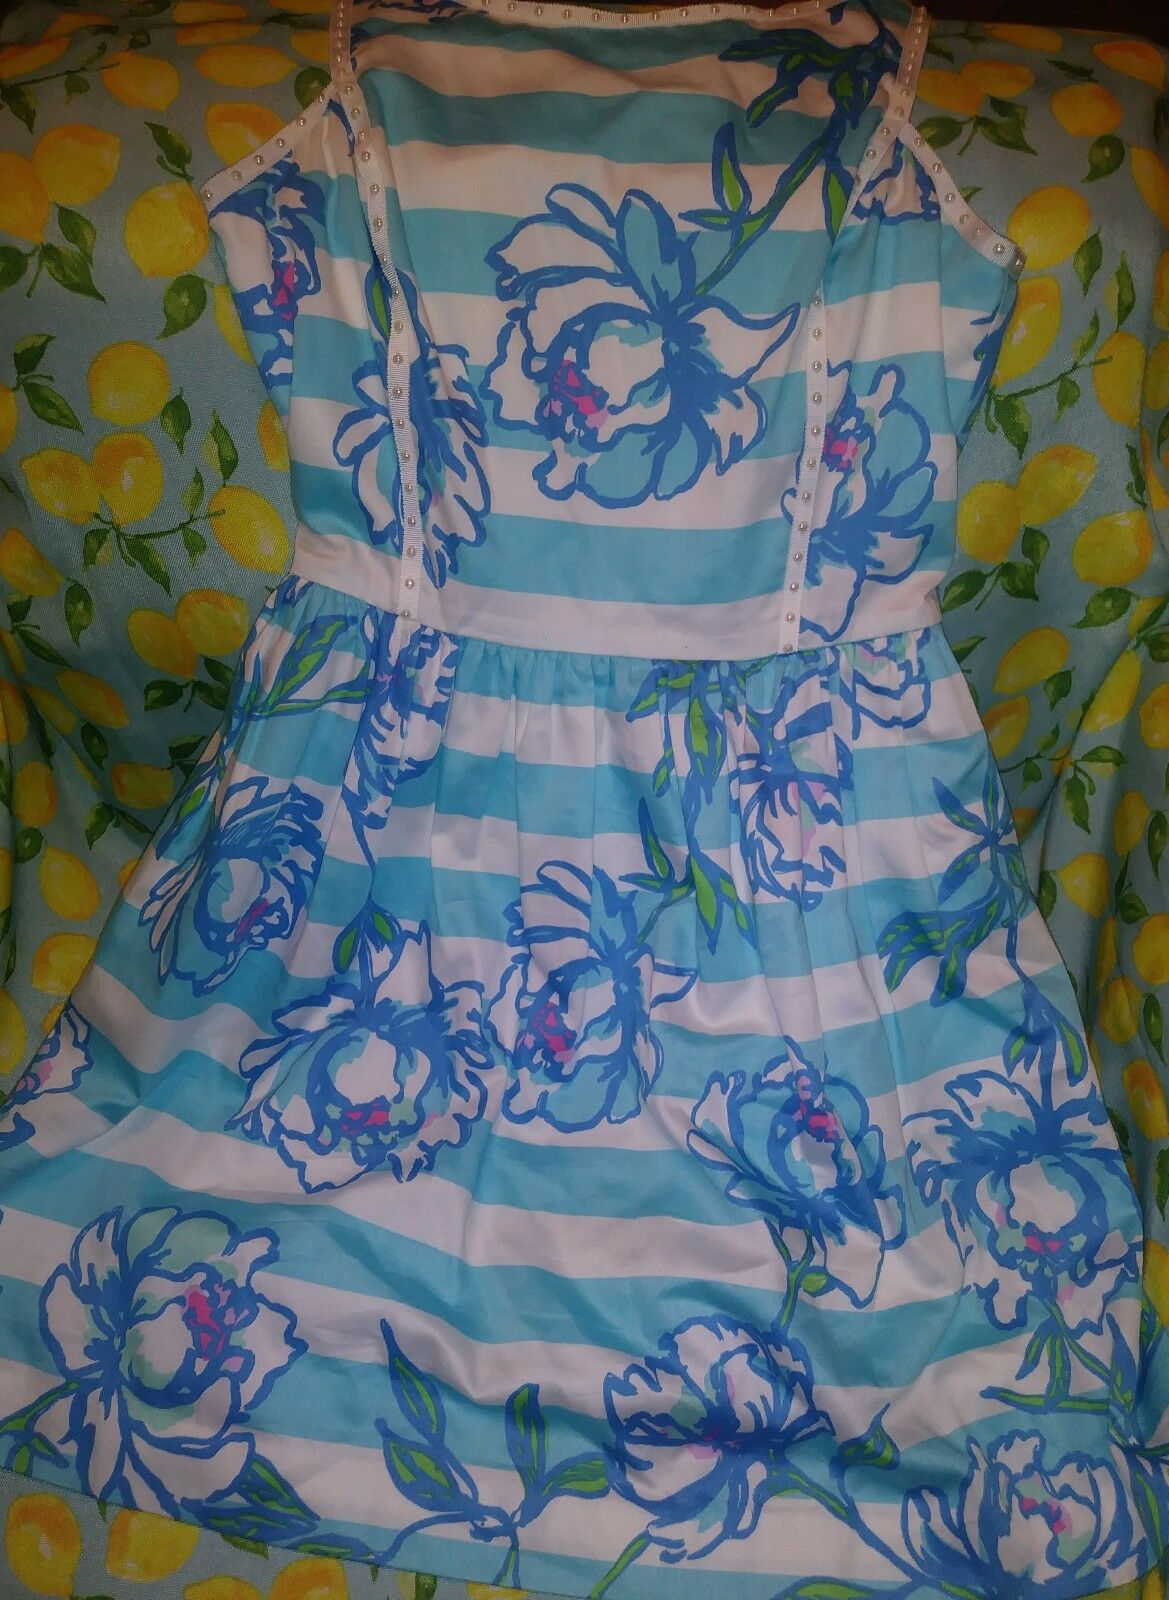 Lilly Pulitzer Sandrine Shorely bluee  Tossing The Line Pearl Detail Dress Sz 2